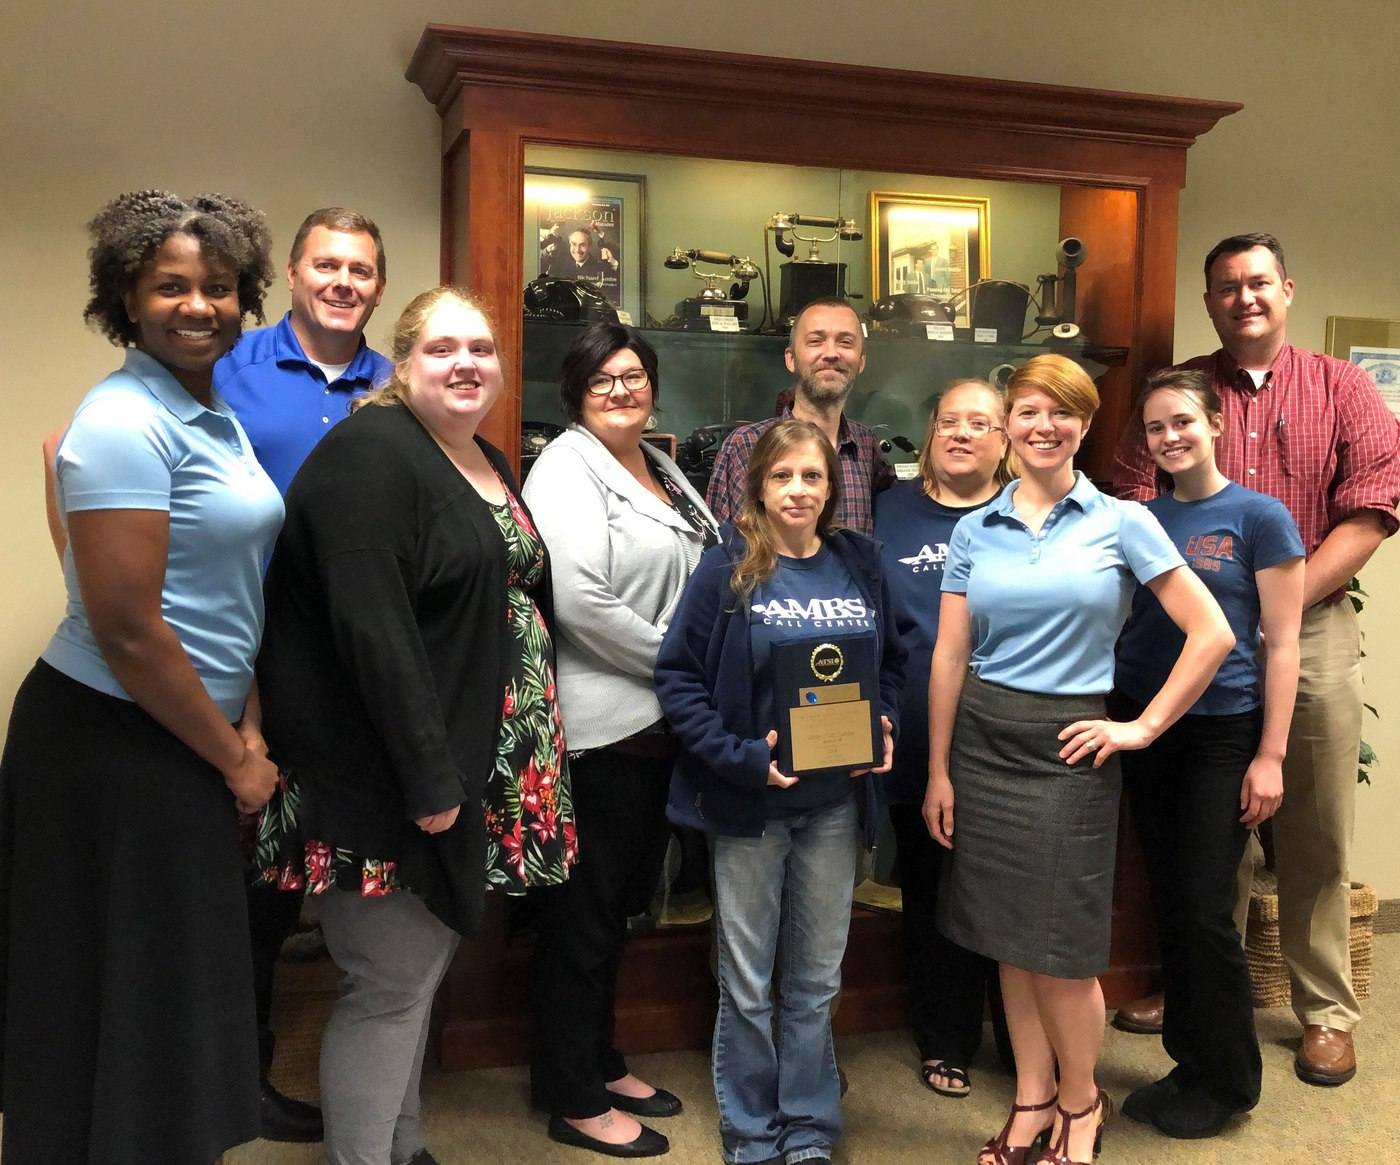 Ambs Call Center Jackson Michigan ATSI 2019 Award